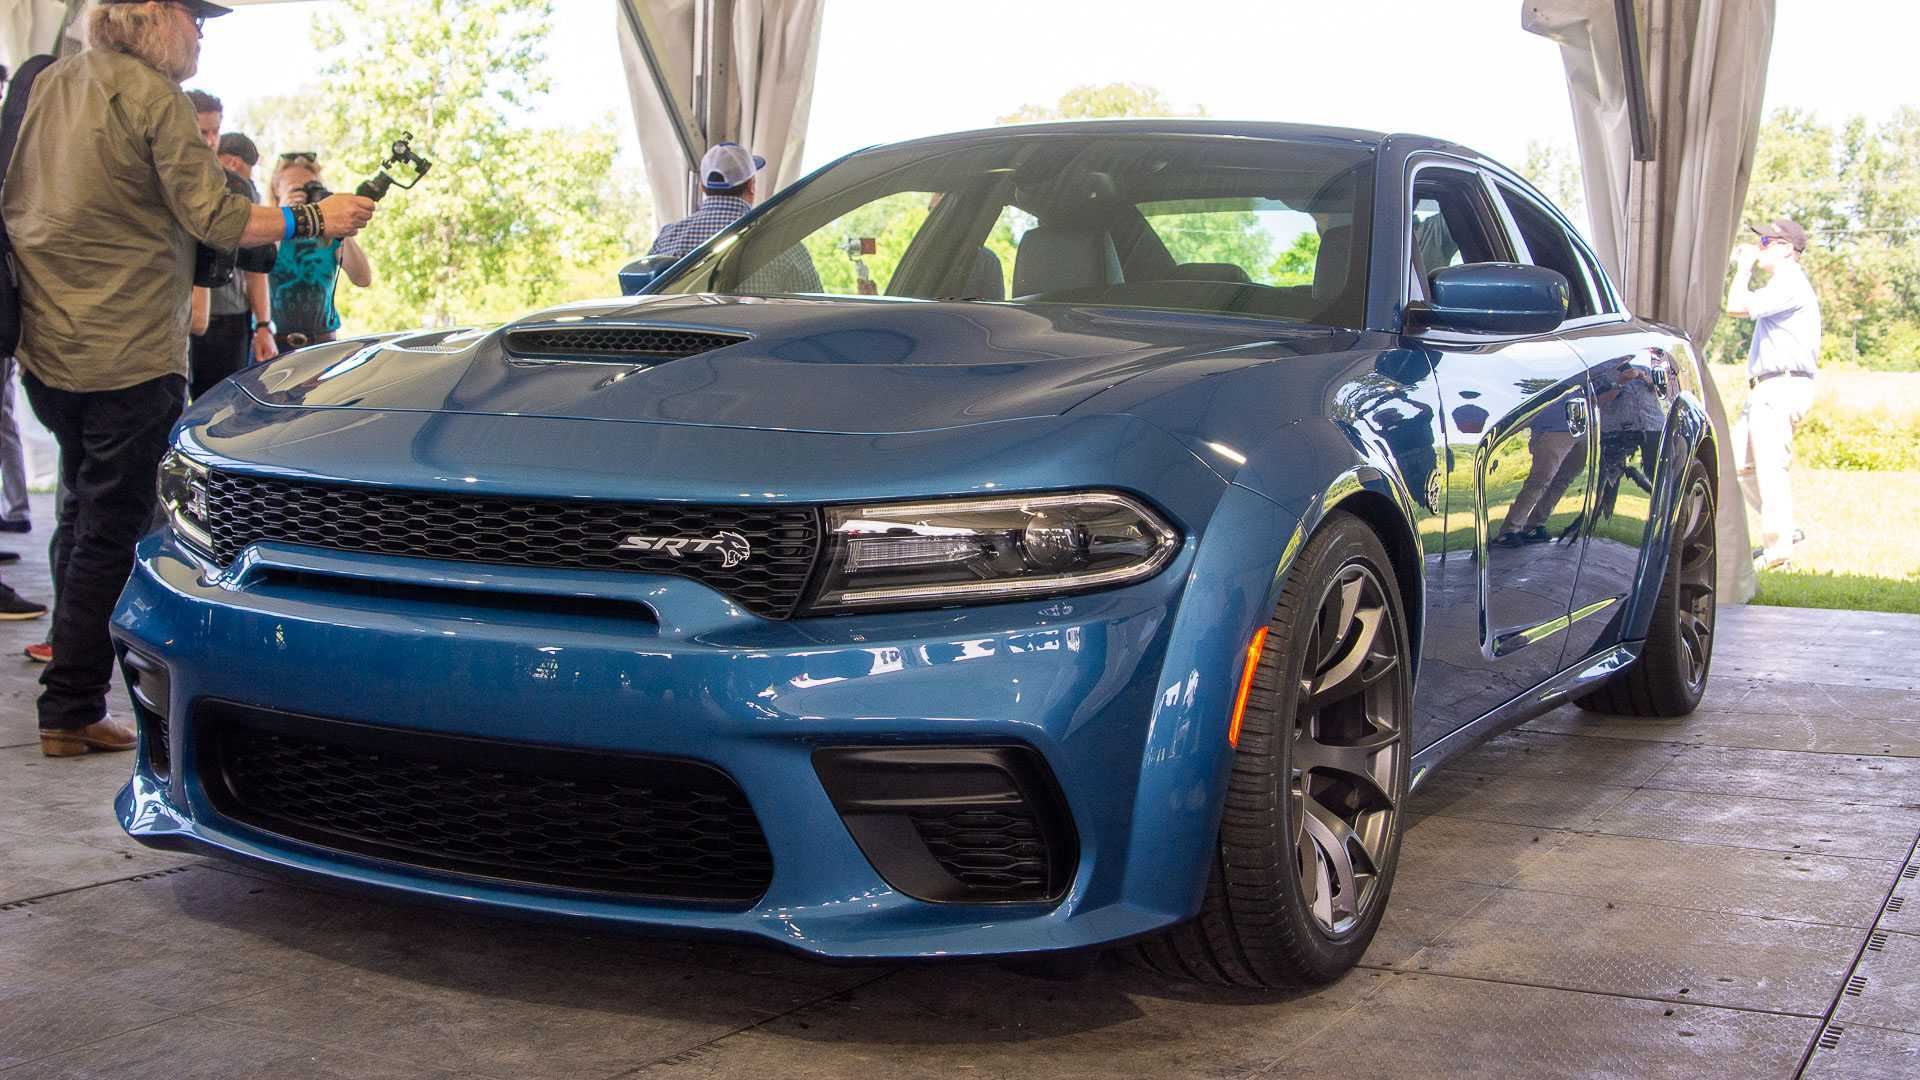 55 A 2020 Dodge Charger Srt Redesign And Review